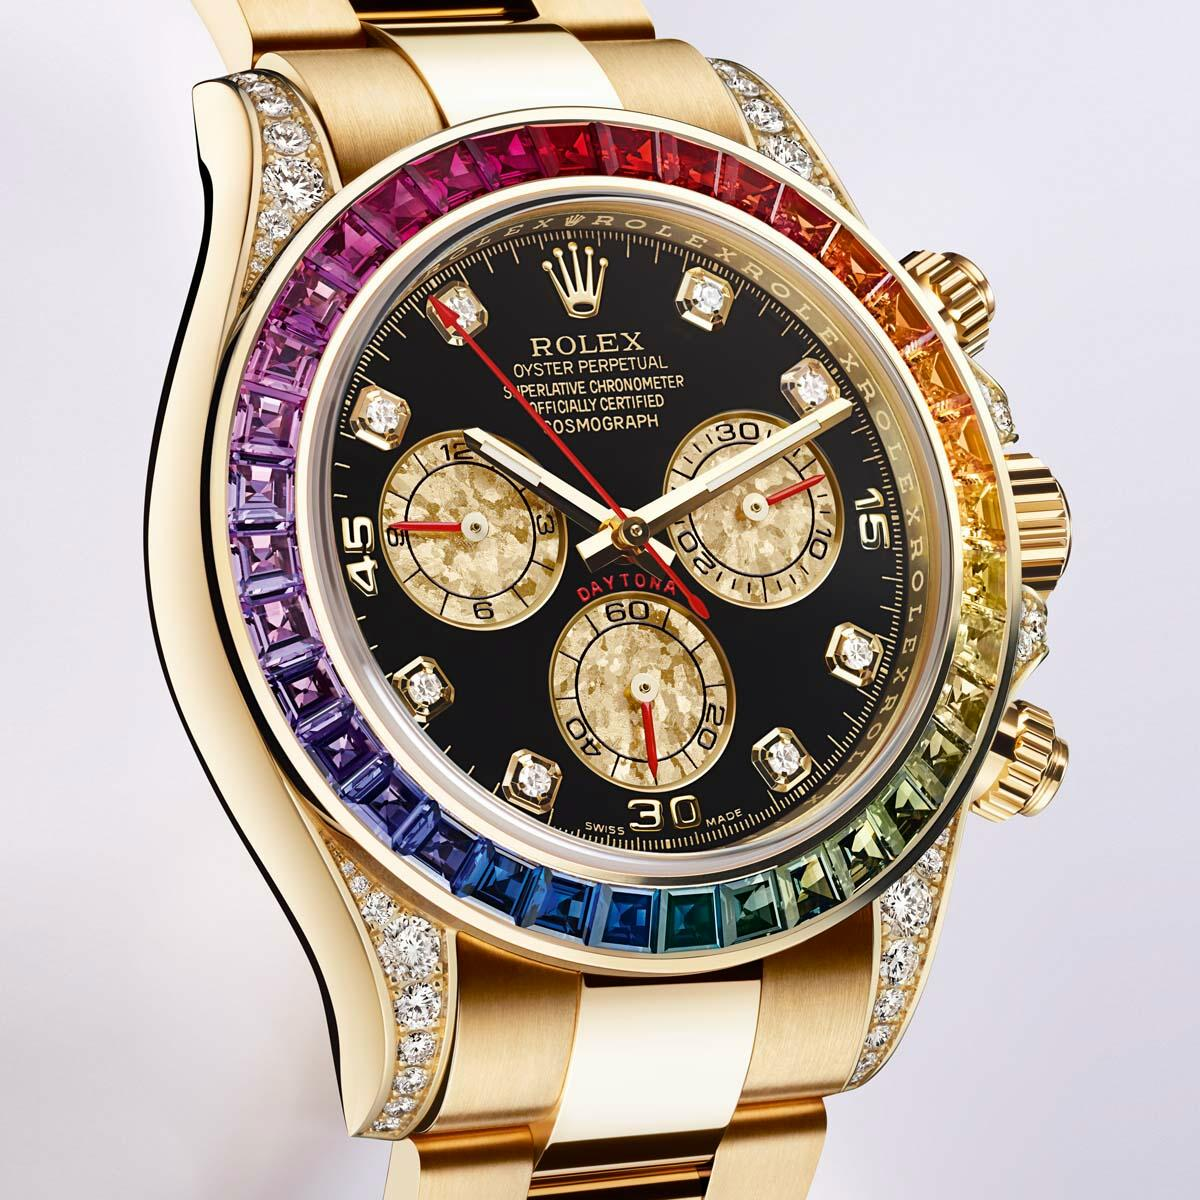 Rolex Watches Photos